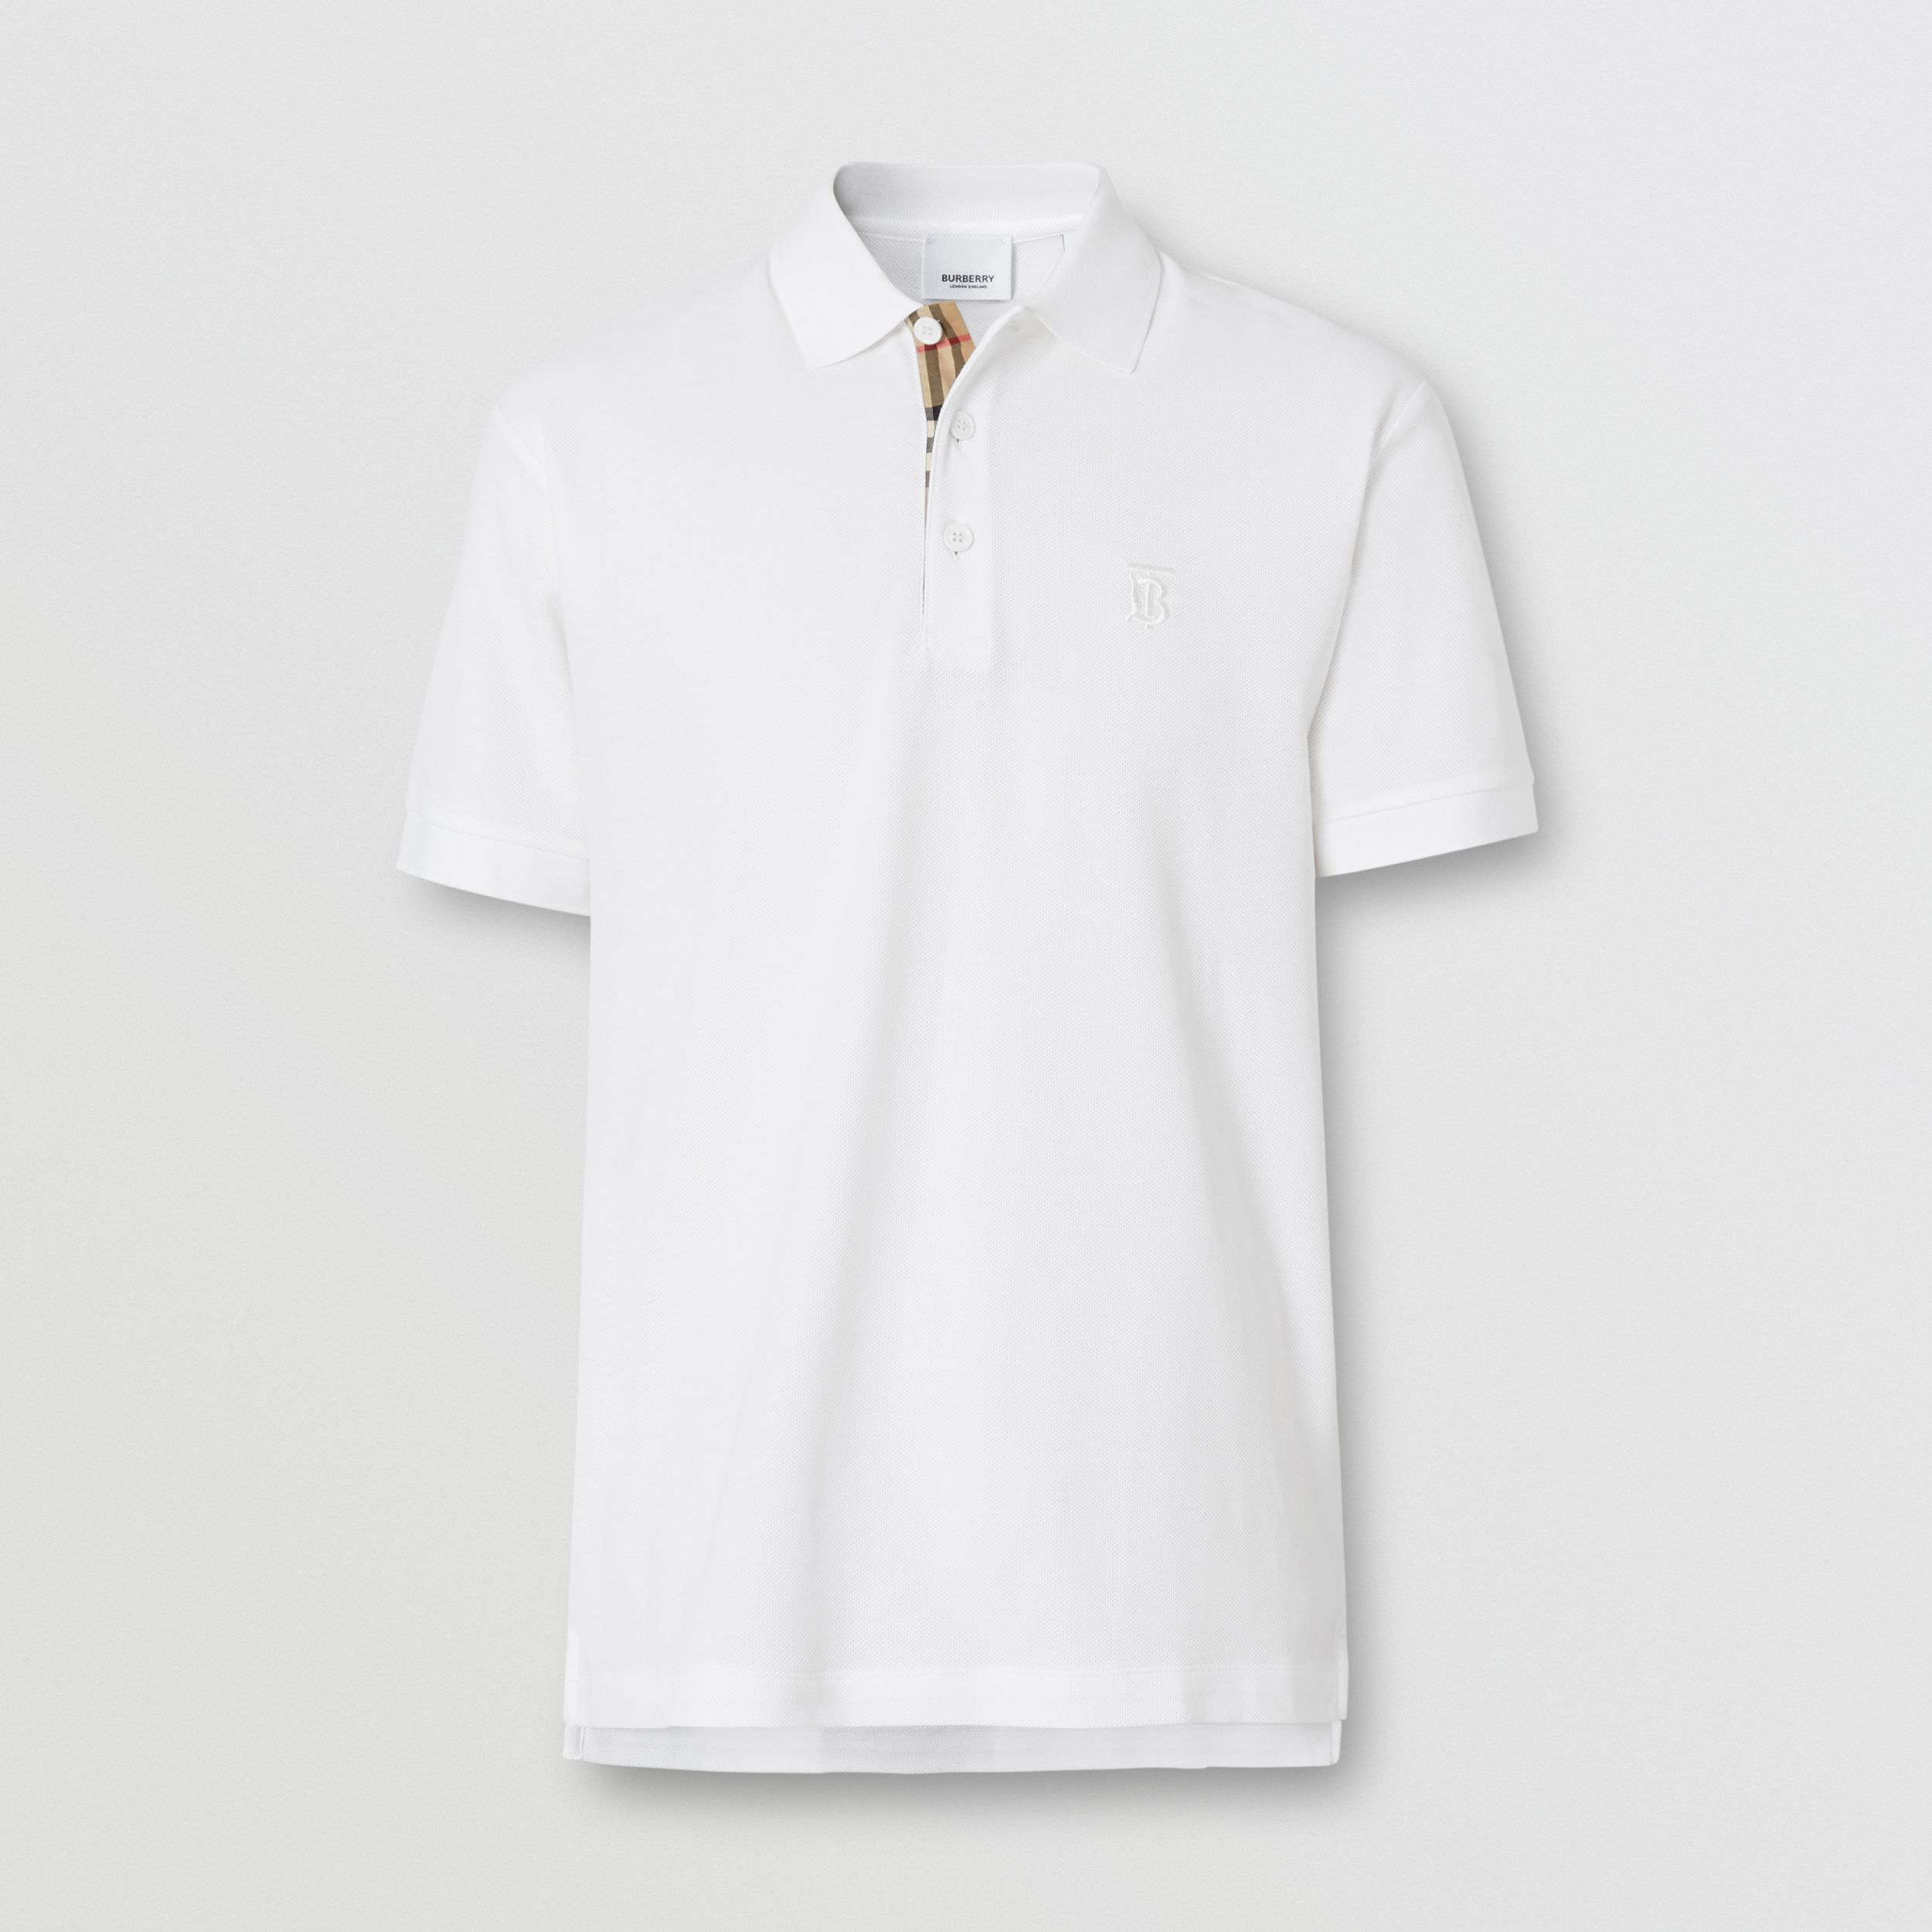 Monogram Motif Cotton Piqué Polo Shirt in White - Men | Burberry - 4